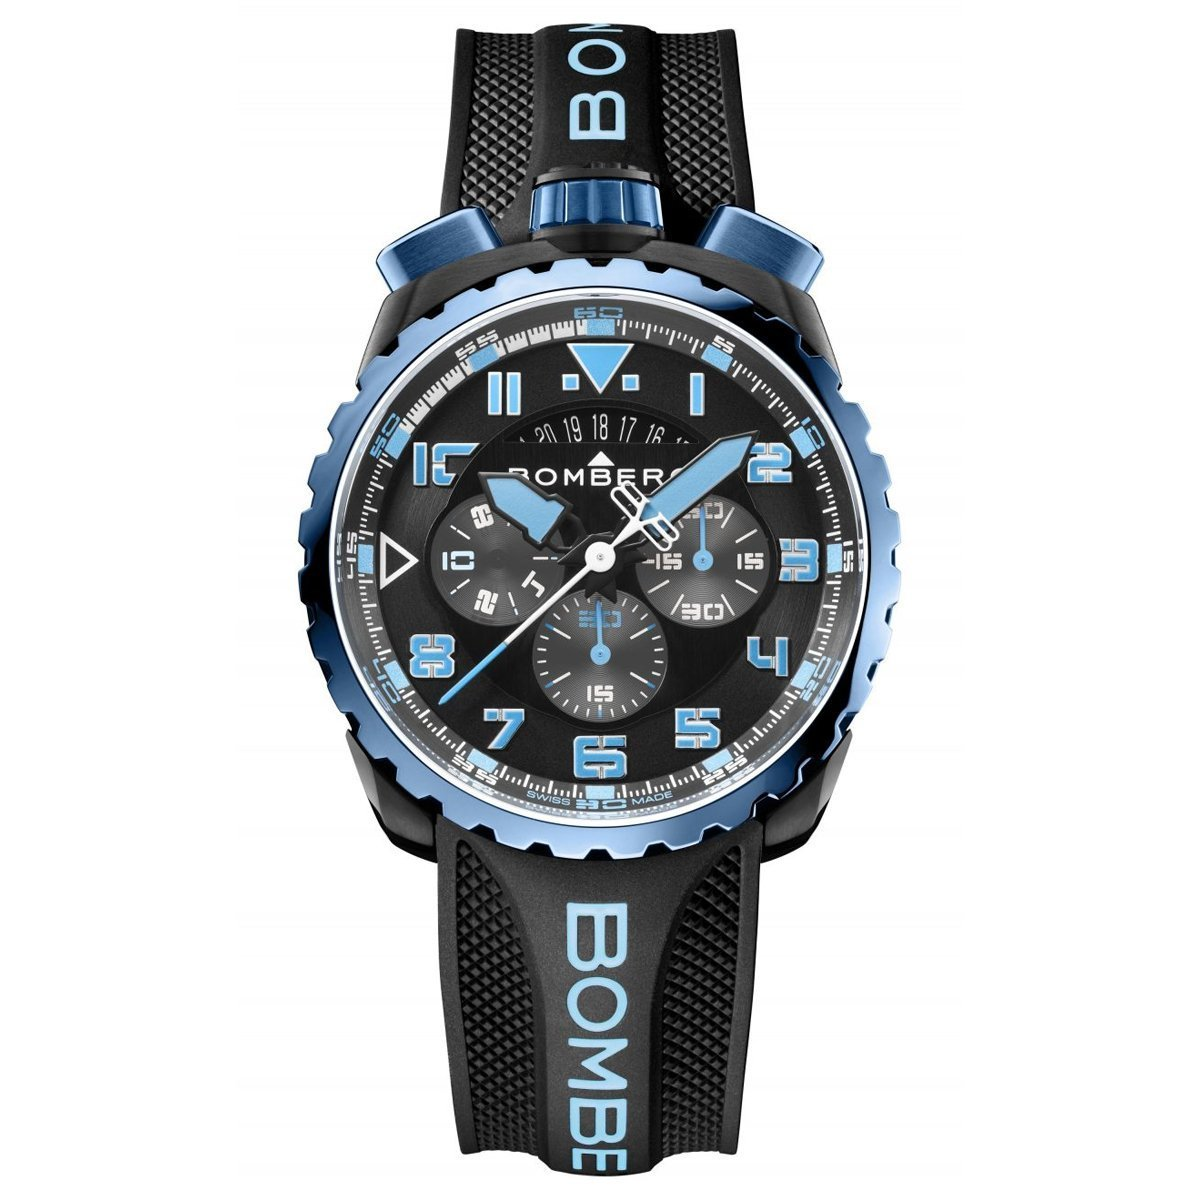 Bomberg BOLT-68 Chronograph Blue Black Special Edition - Watches & Crystals